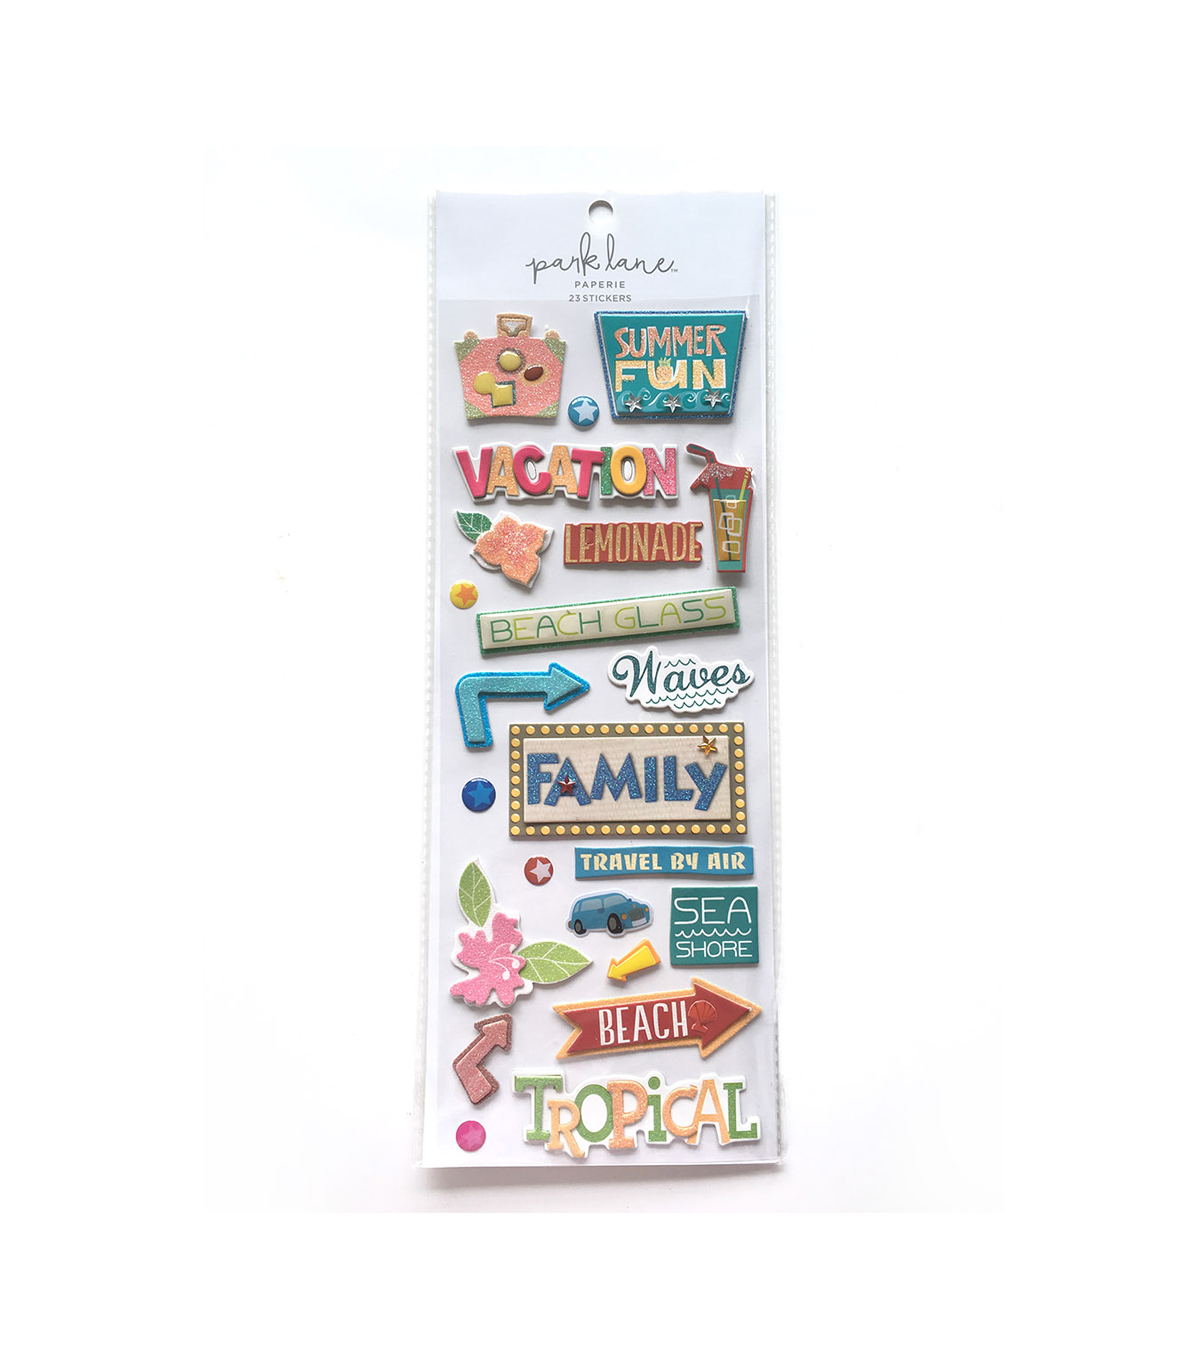 Park Lane Paperie 23 pk Stickers-Vacation